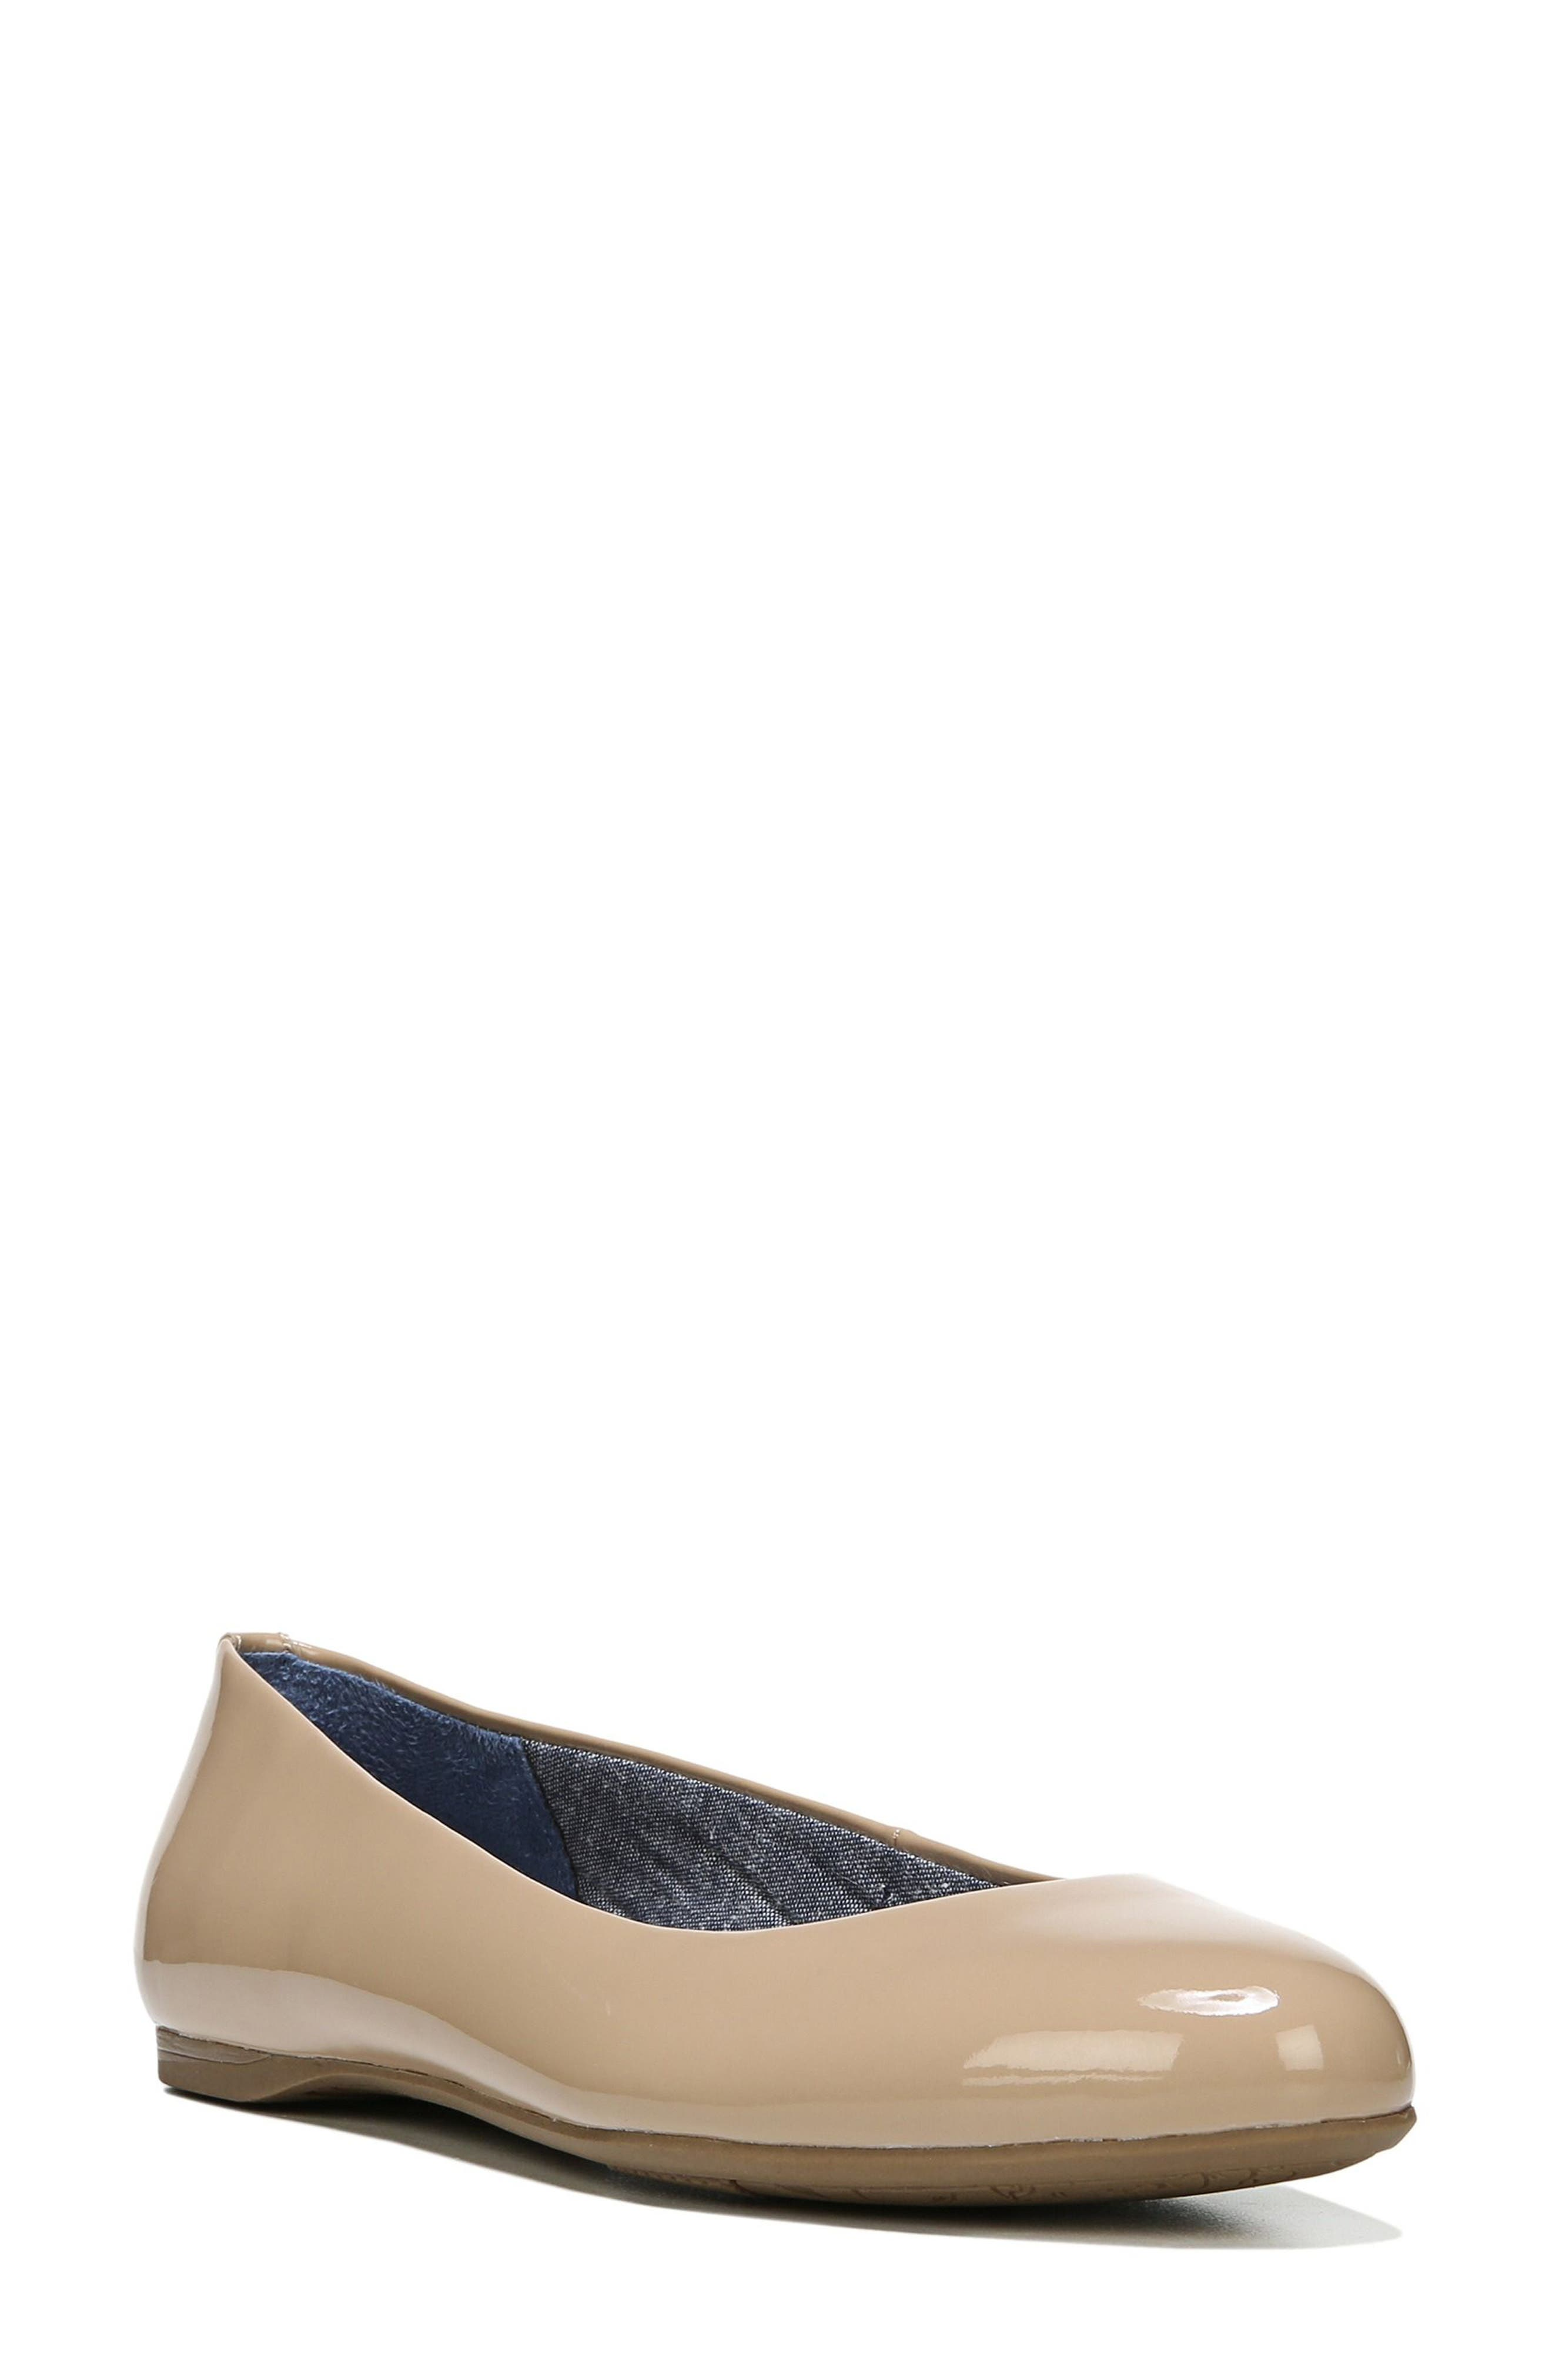 DR. SCHOLL'S, Giorgie Flat, Main thumbnail 1, color, SAND FAUX LEATHER